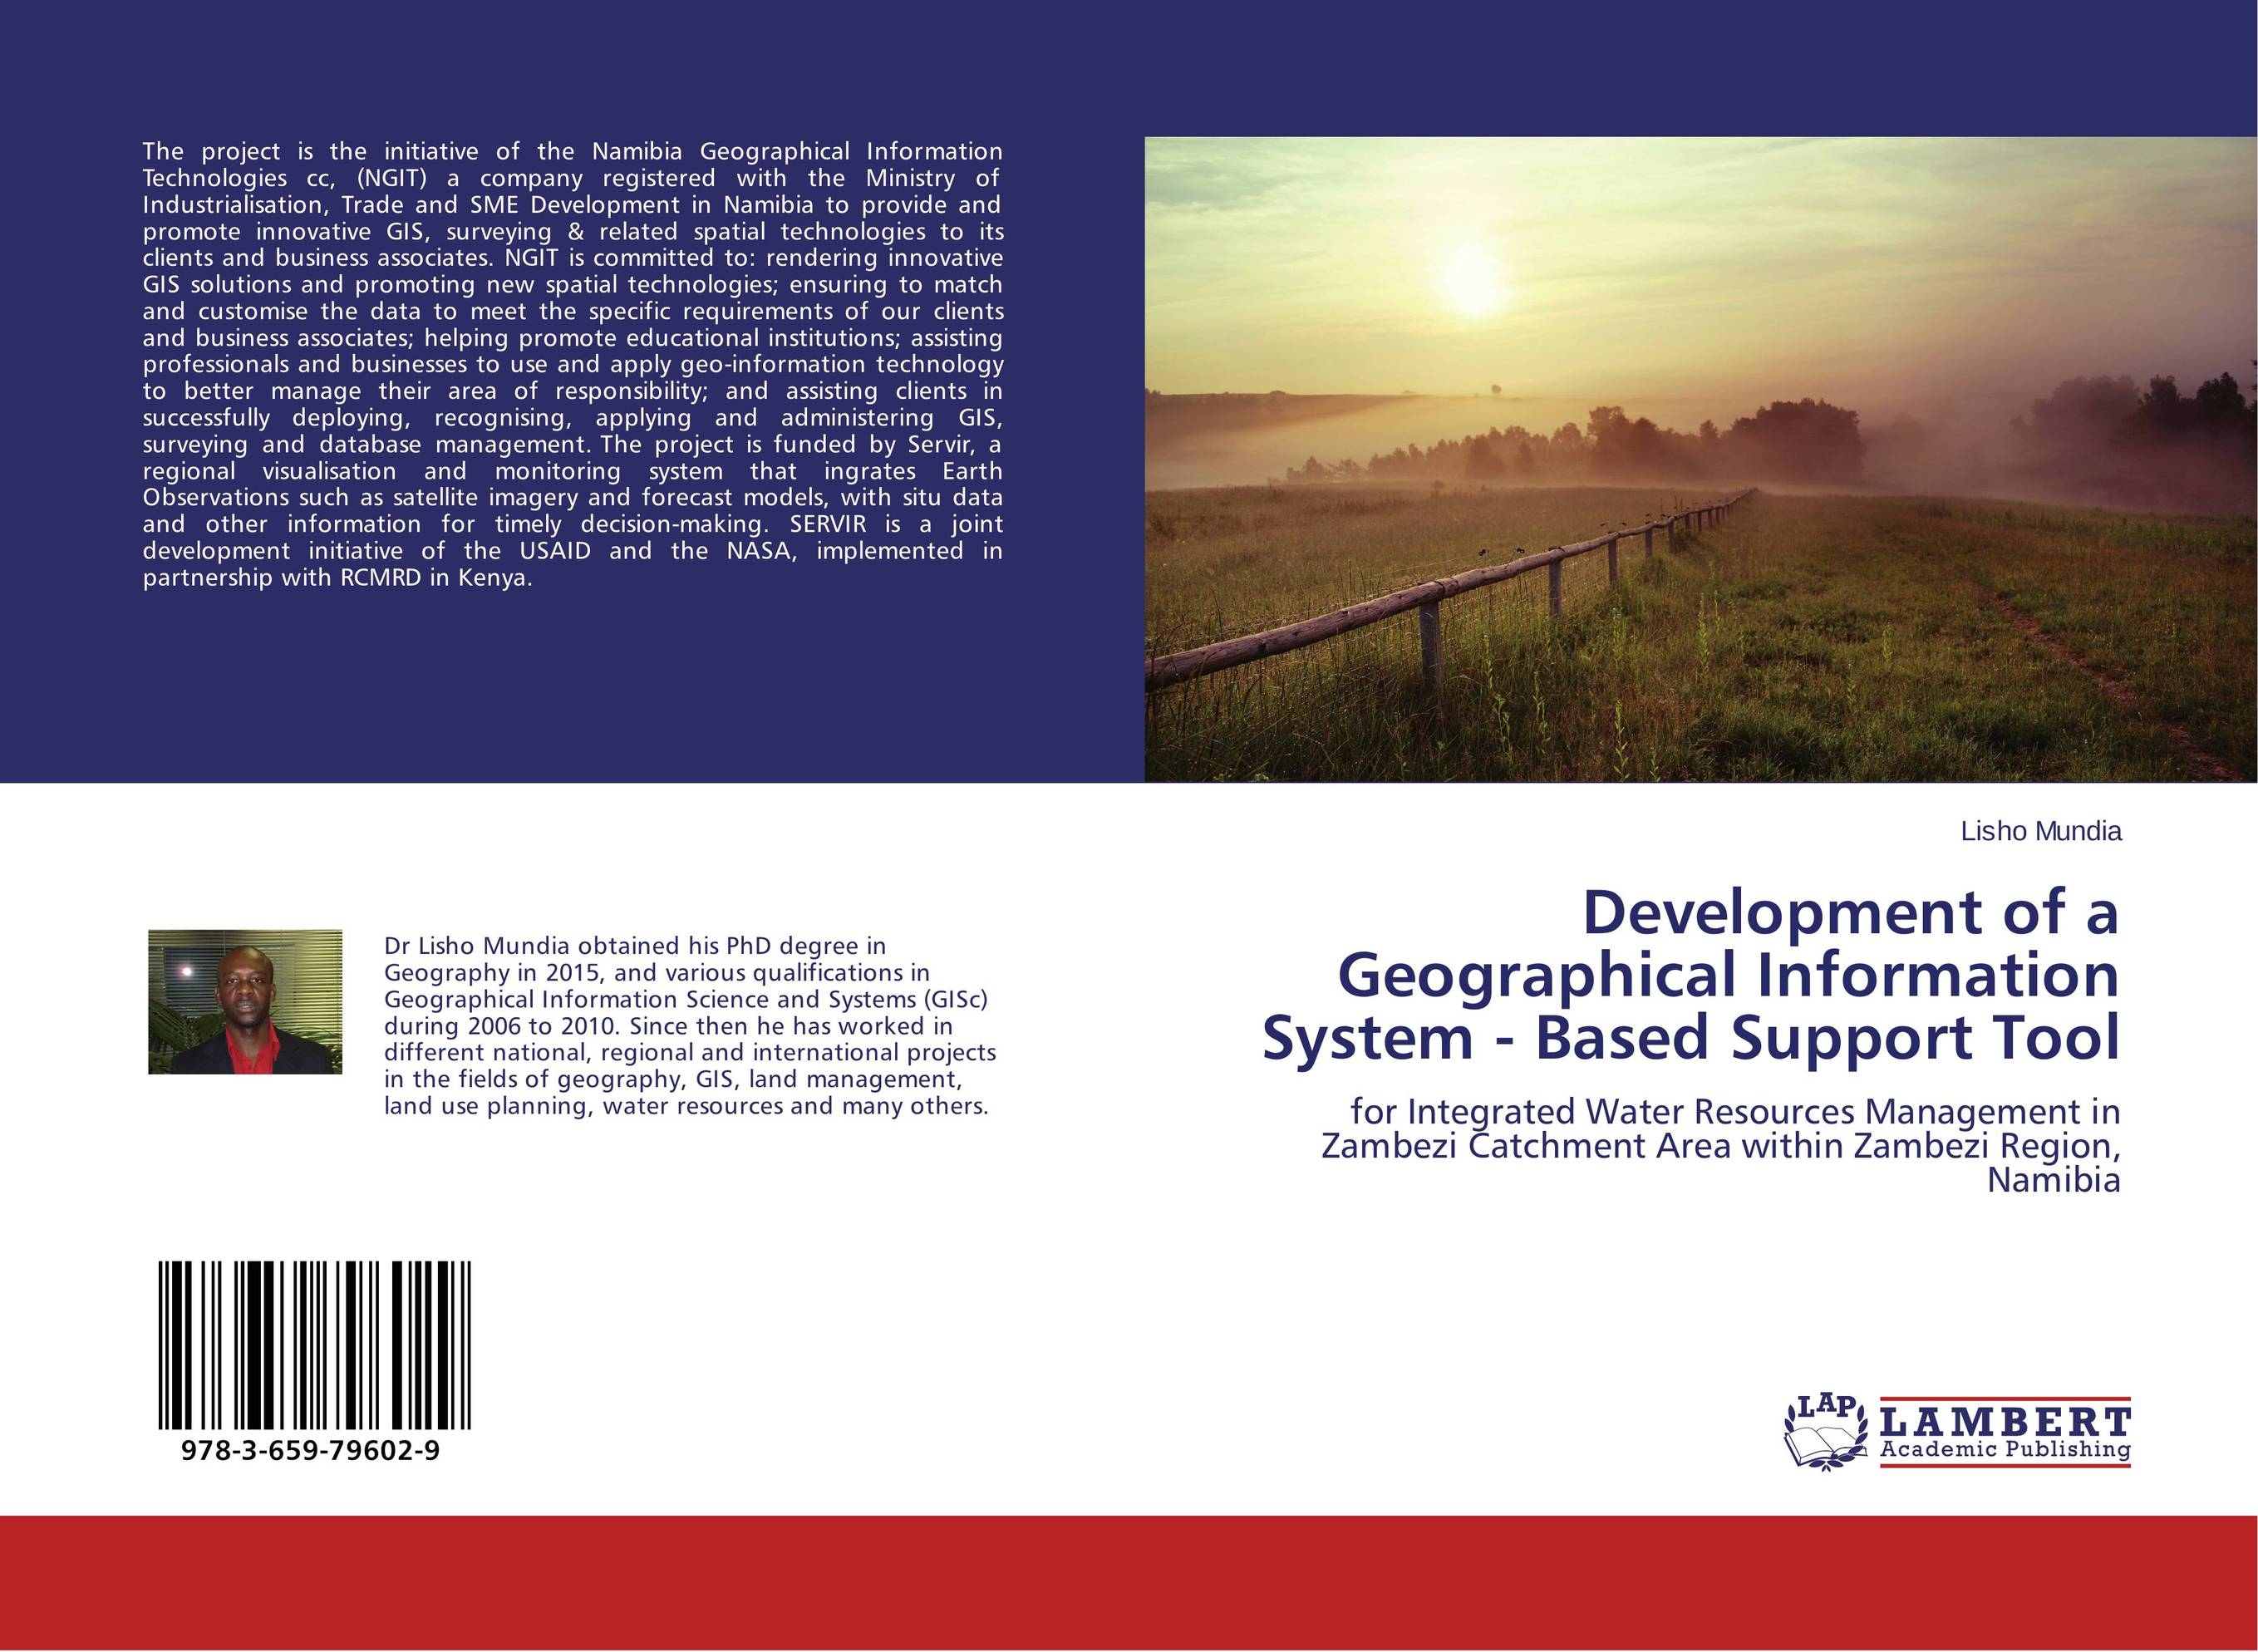 Development of a Geographical Information System - Based Support Tool robert hillard information driven business how to manage data and information for maximum advantage